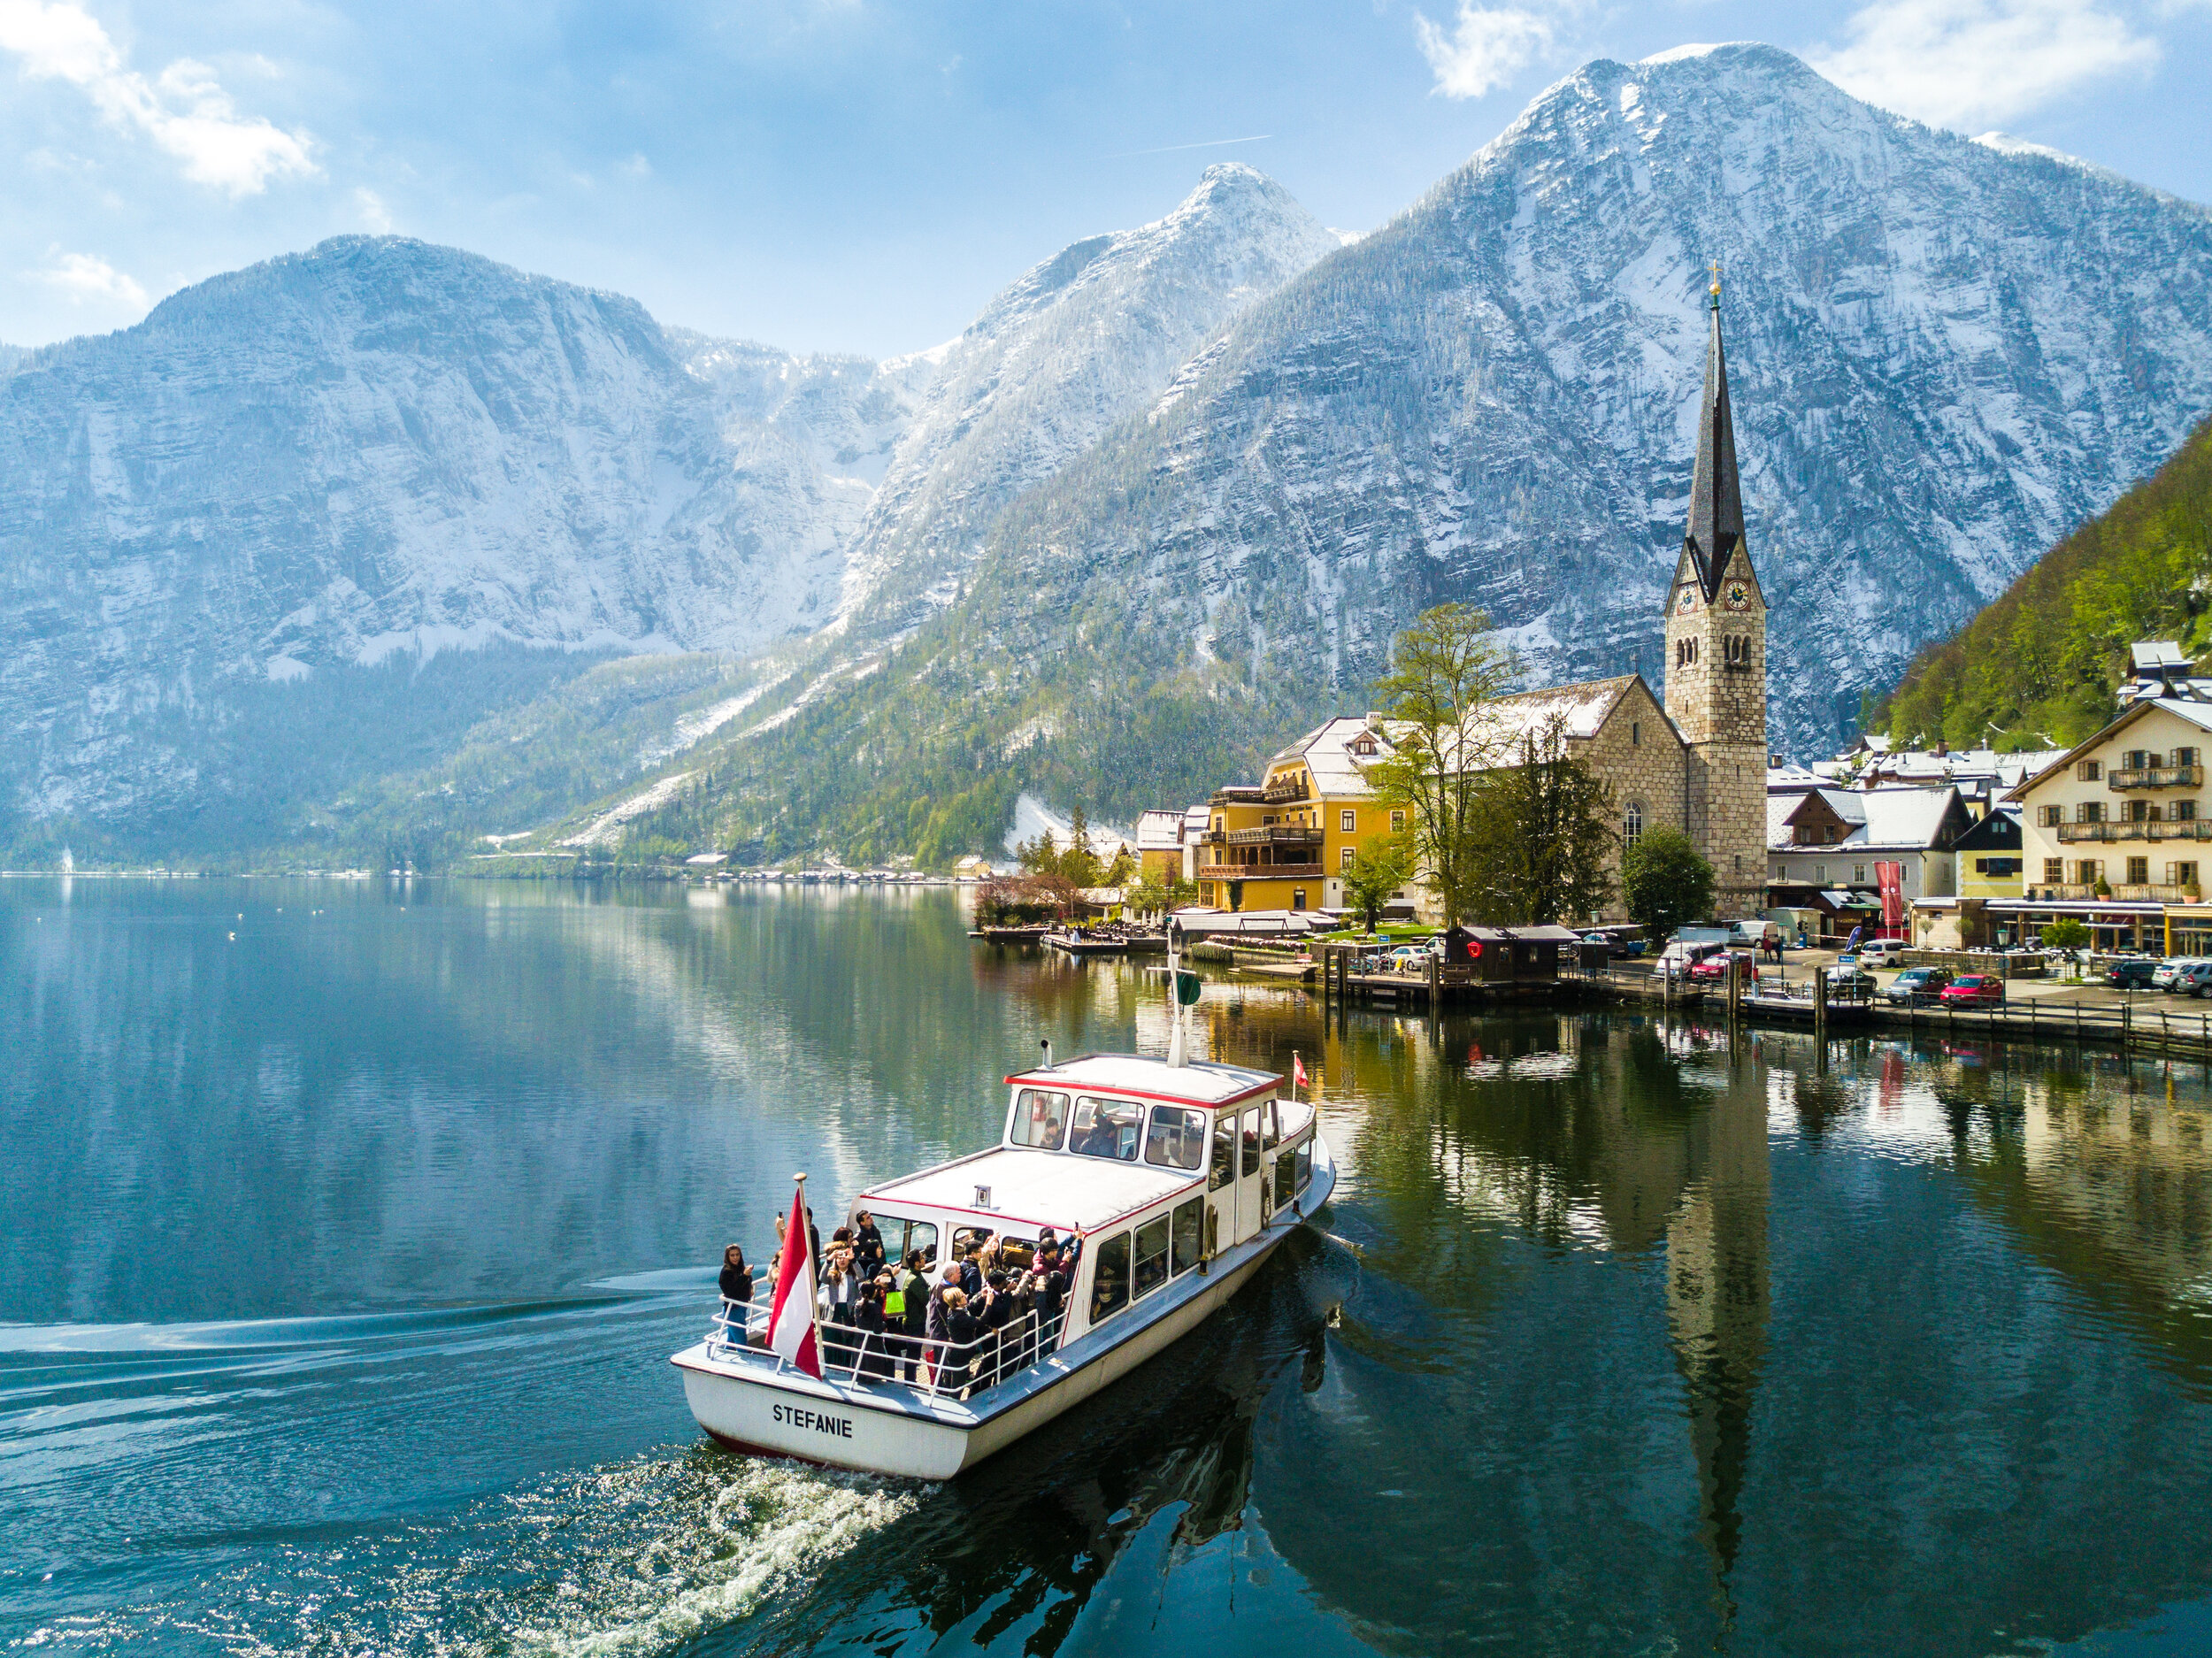 Boat tours on Lake Hallstatt are one of the premiere activities